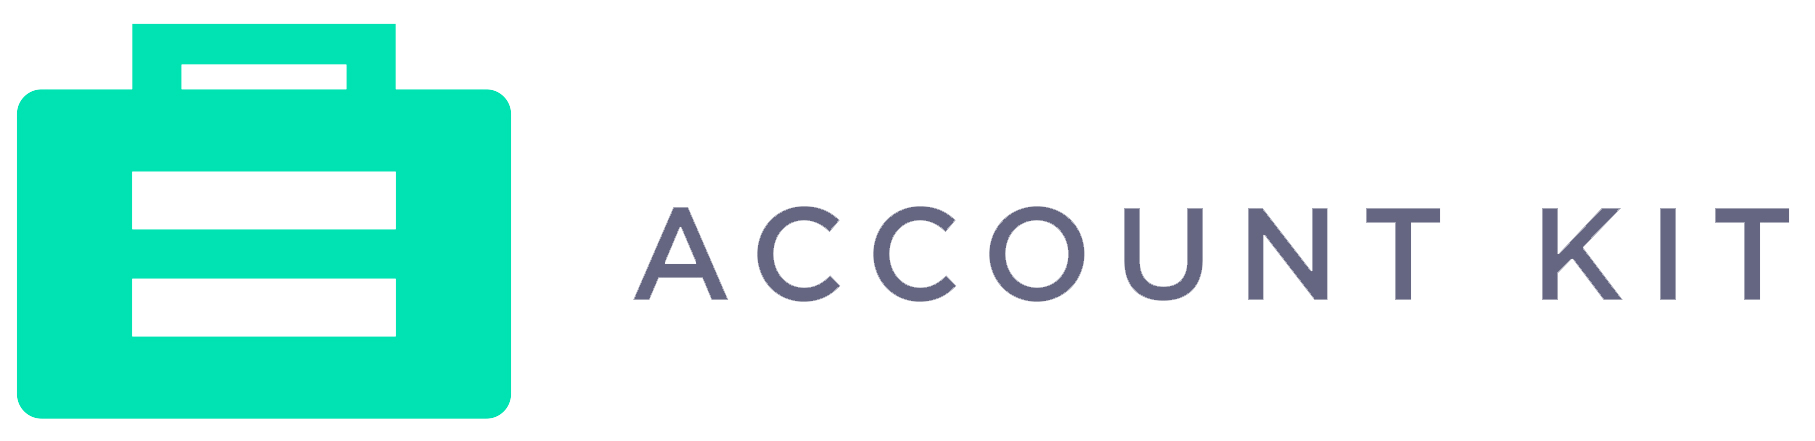 accountkit-logo